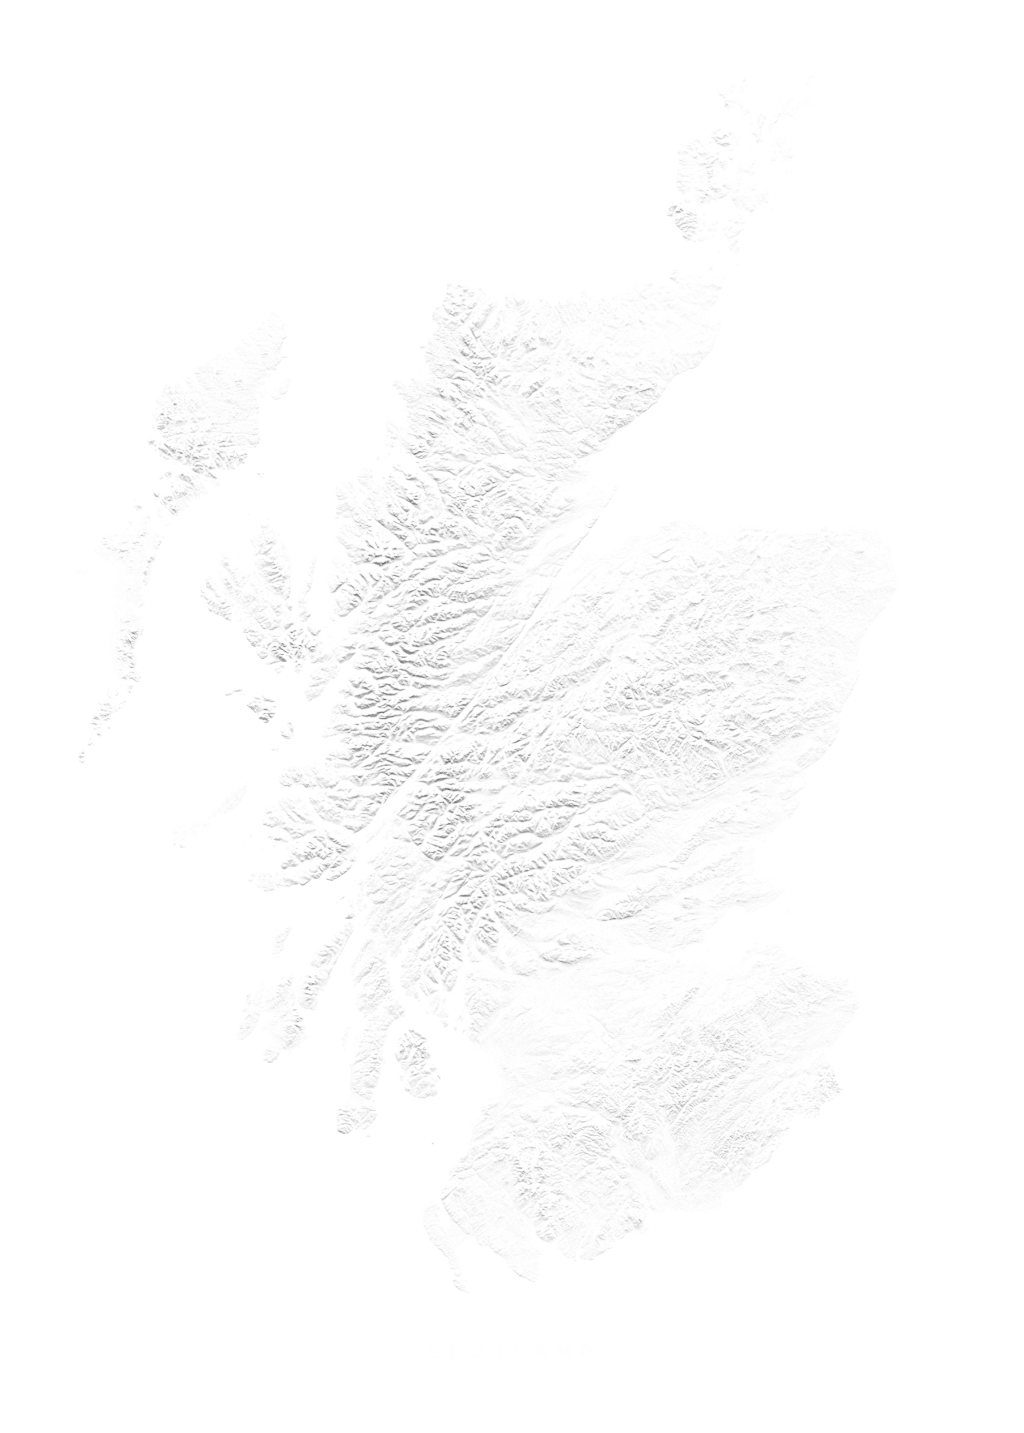 Scotland wall map